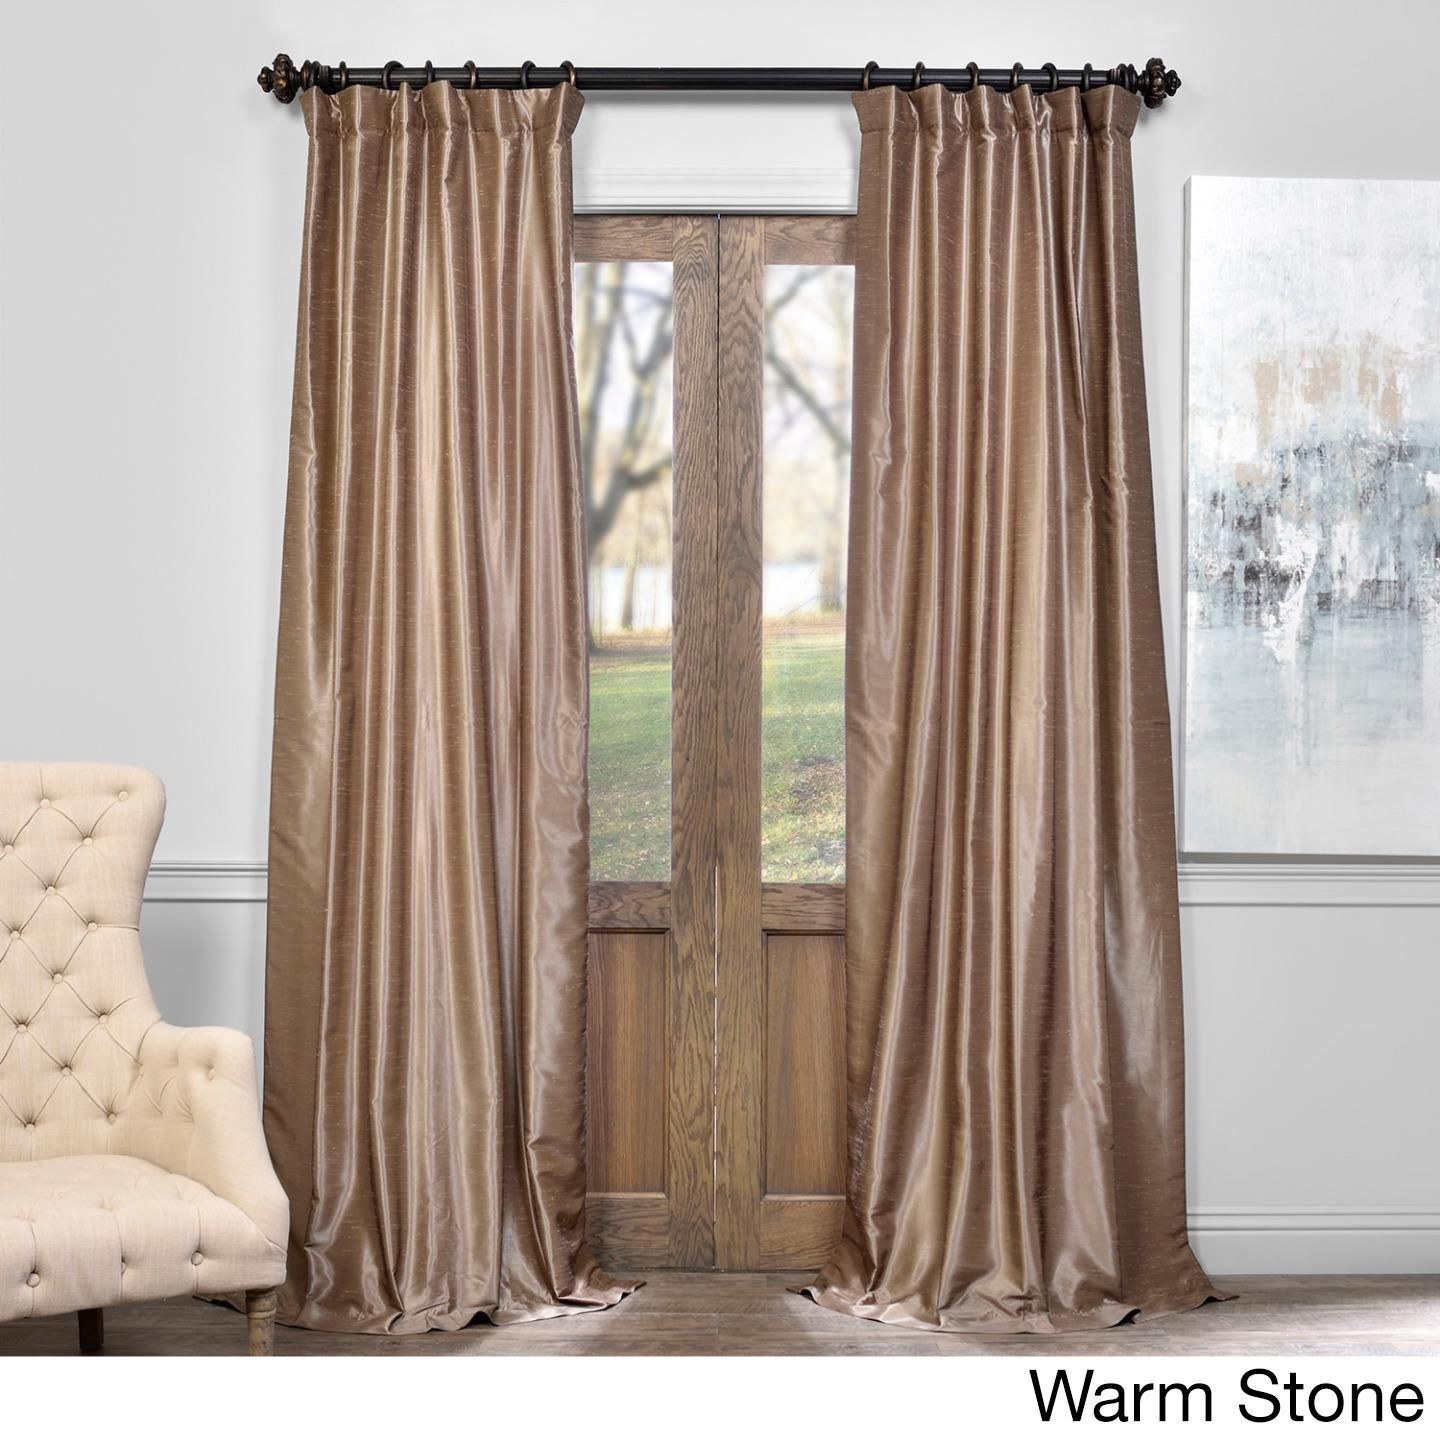 curtains militariart com decor and ideas white home benches for two simple curtain black including living about silk toned best with room gallery